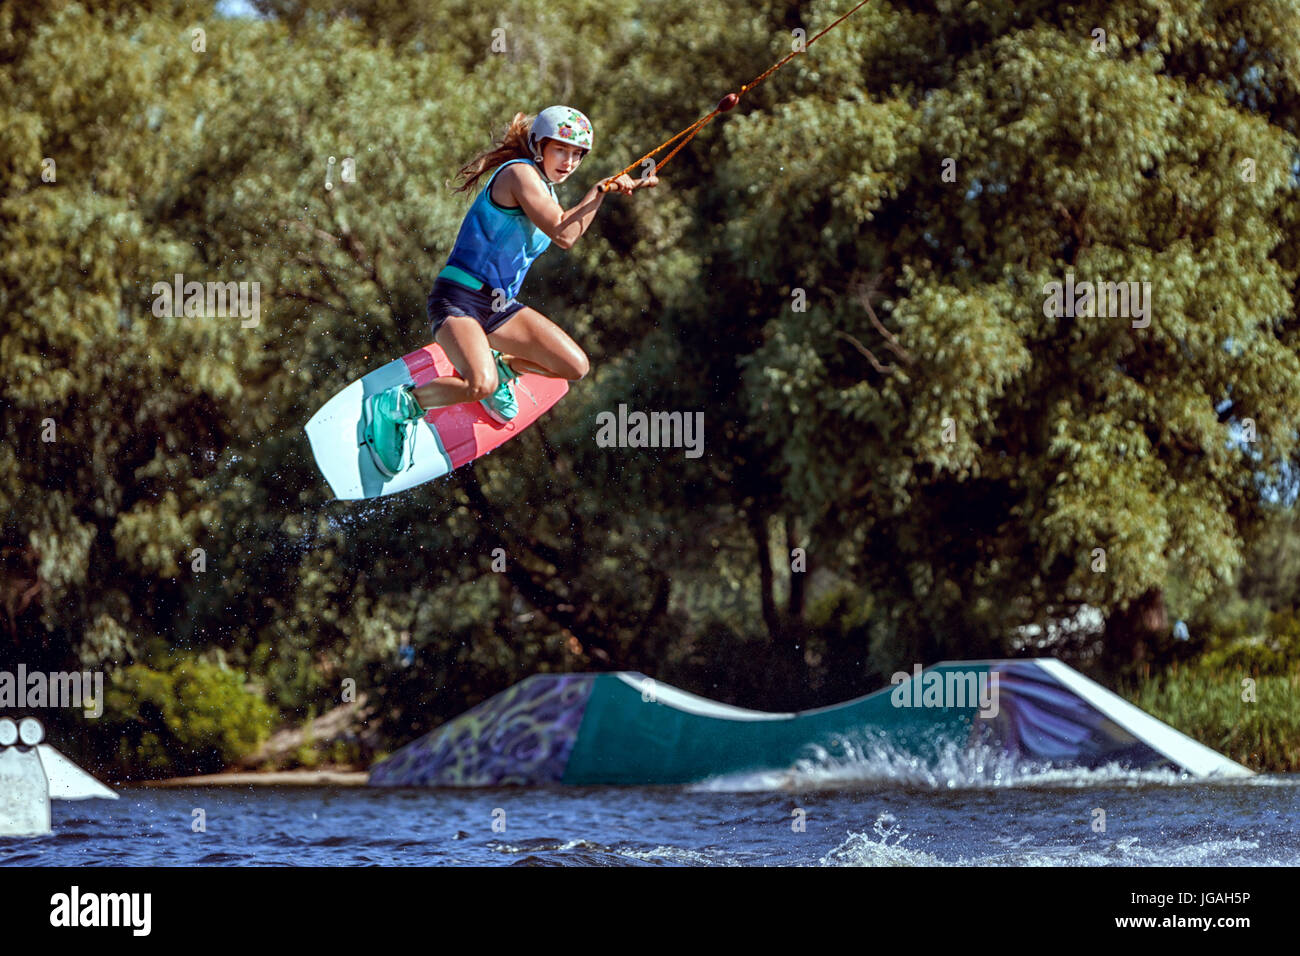 World champion in wakeboarding, she trains to jump. - Stock Image